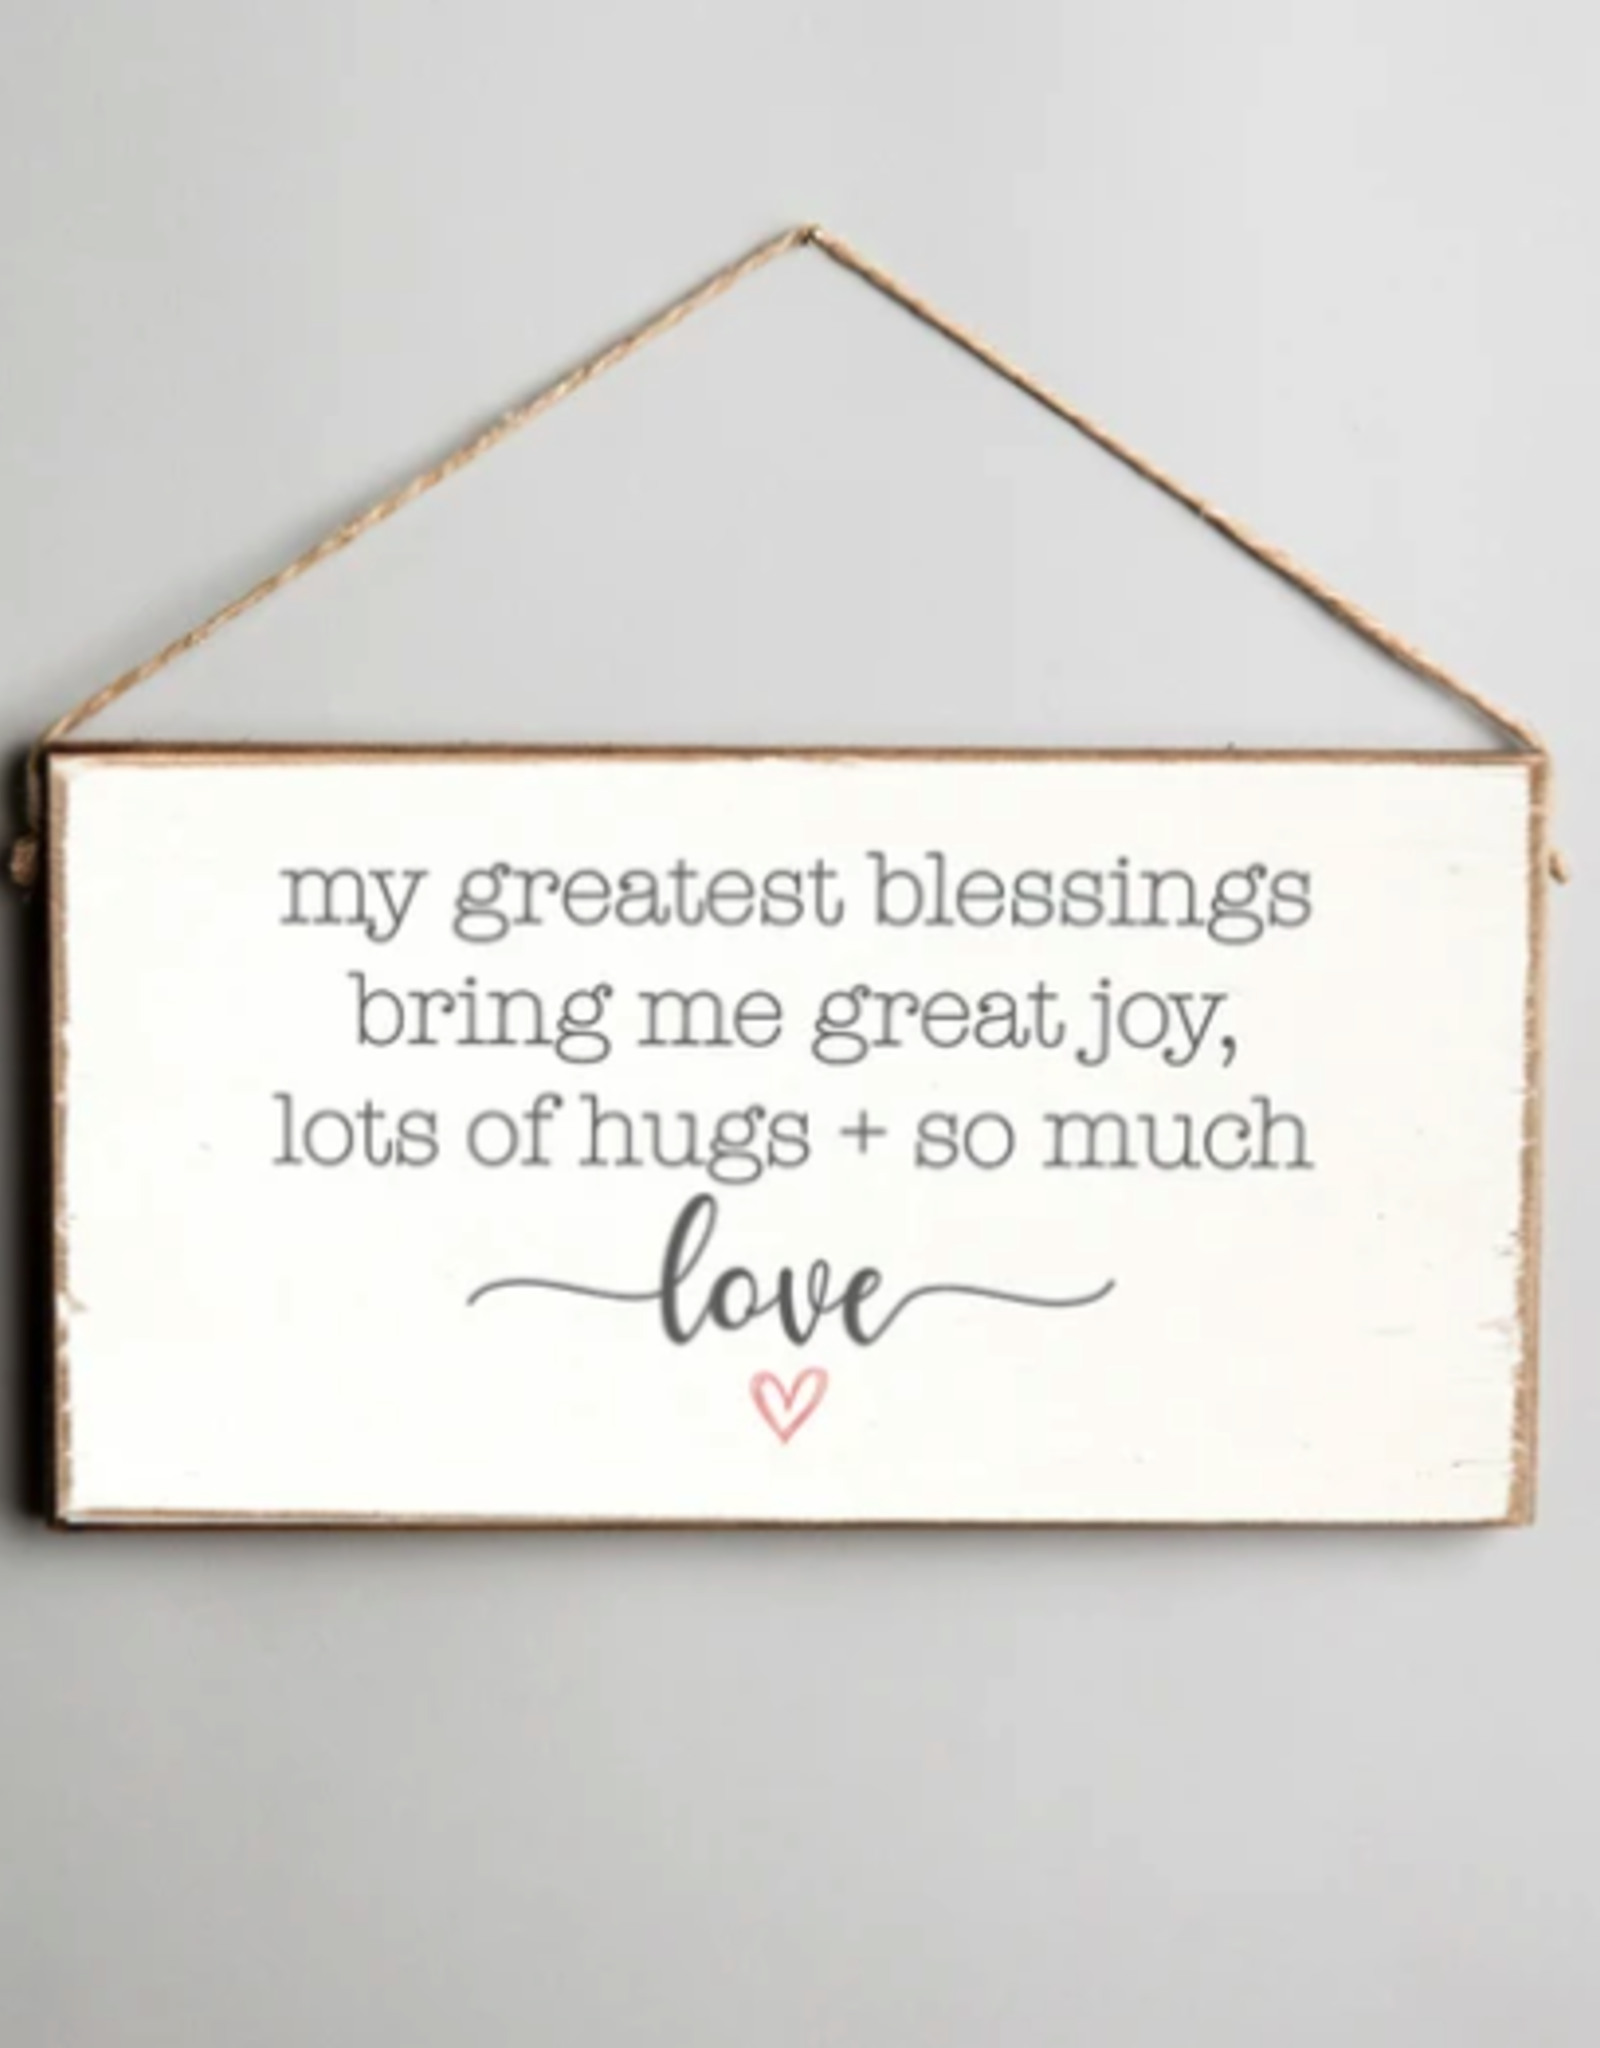 Rustic Marlin Rustic Marlin - My Greatest Blessings Bring Me Mini Plank Sign